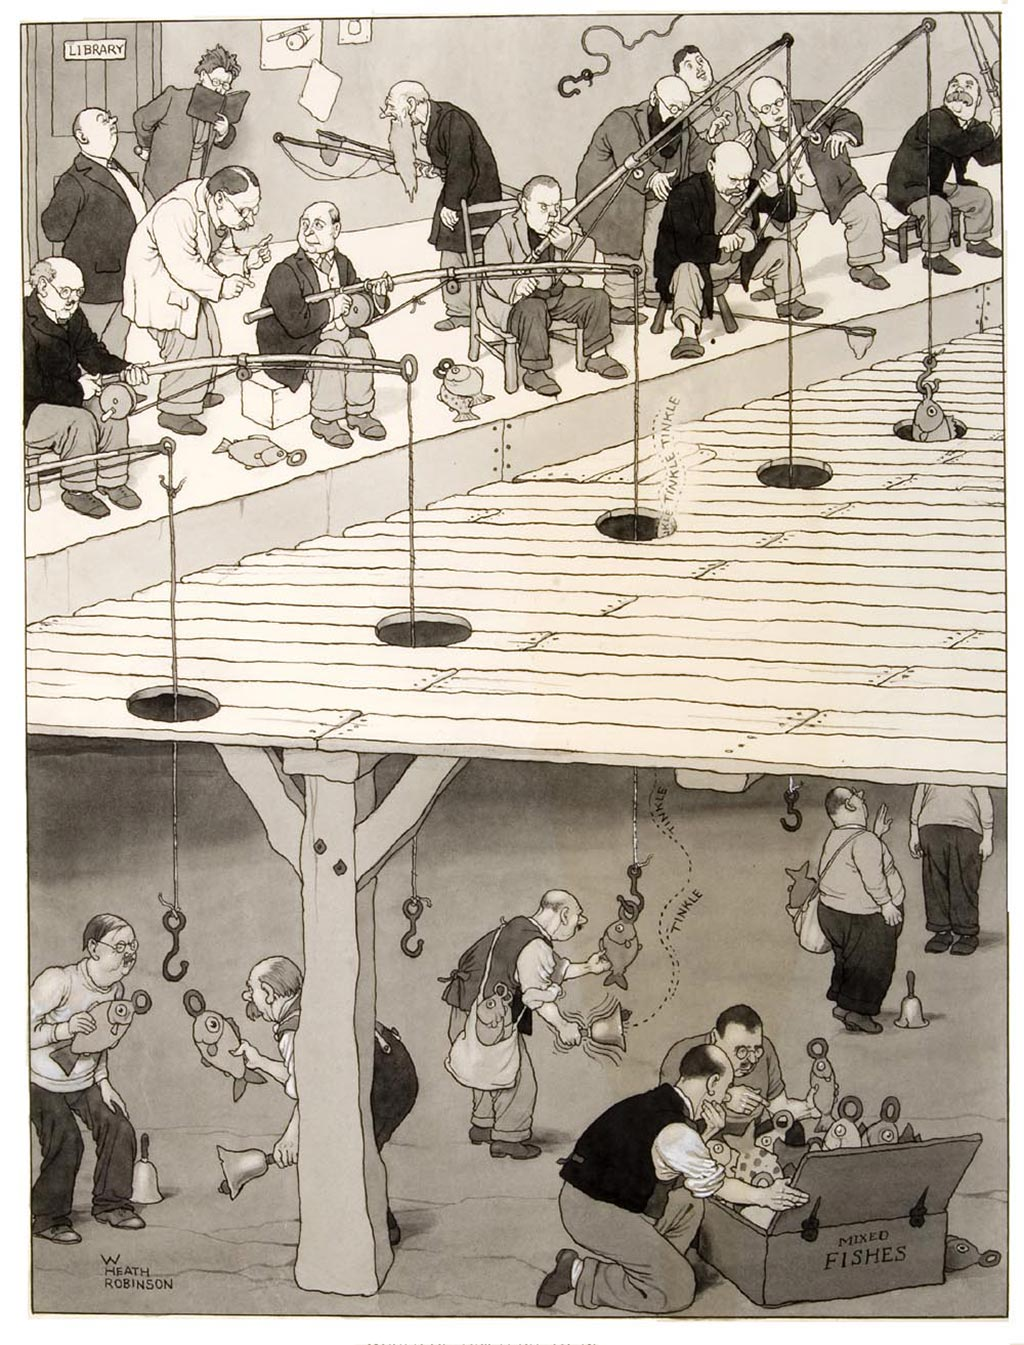 william_heath_robinson_inventions_teaching-would-be-anglers